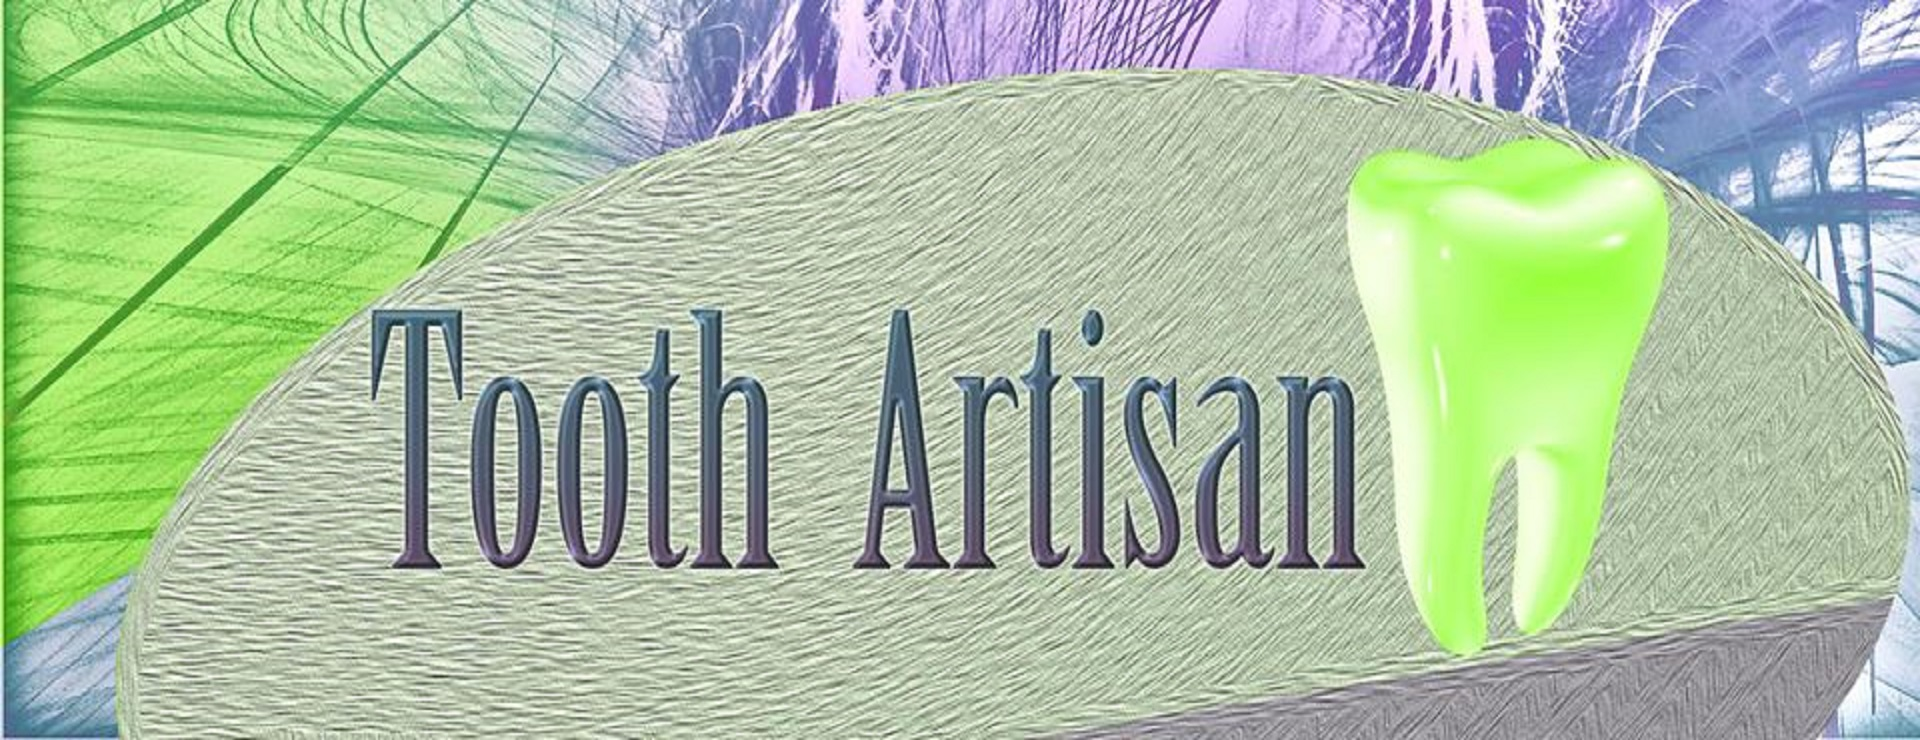 Tooth artisan front 1